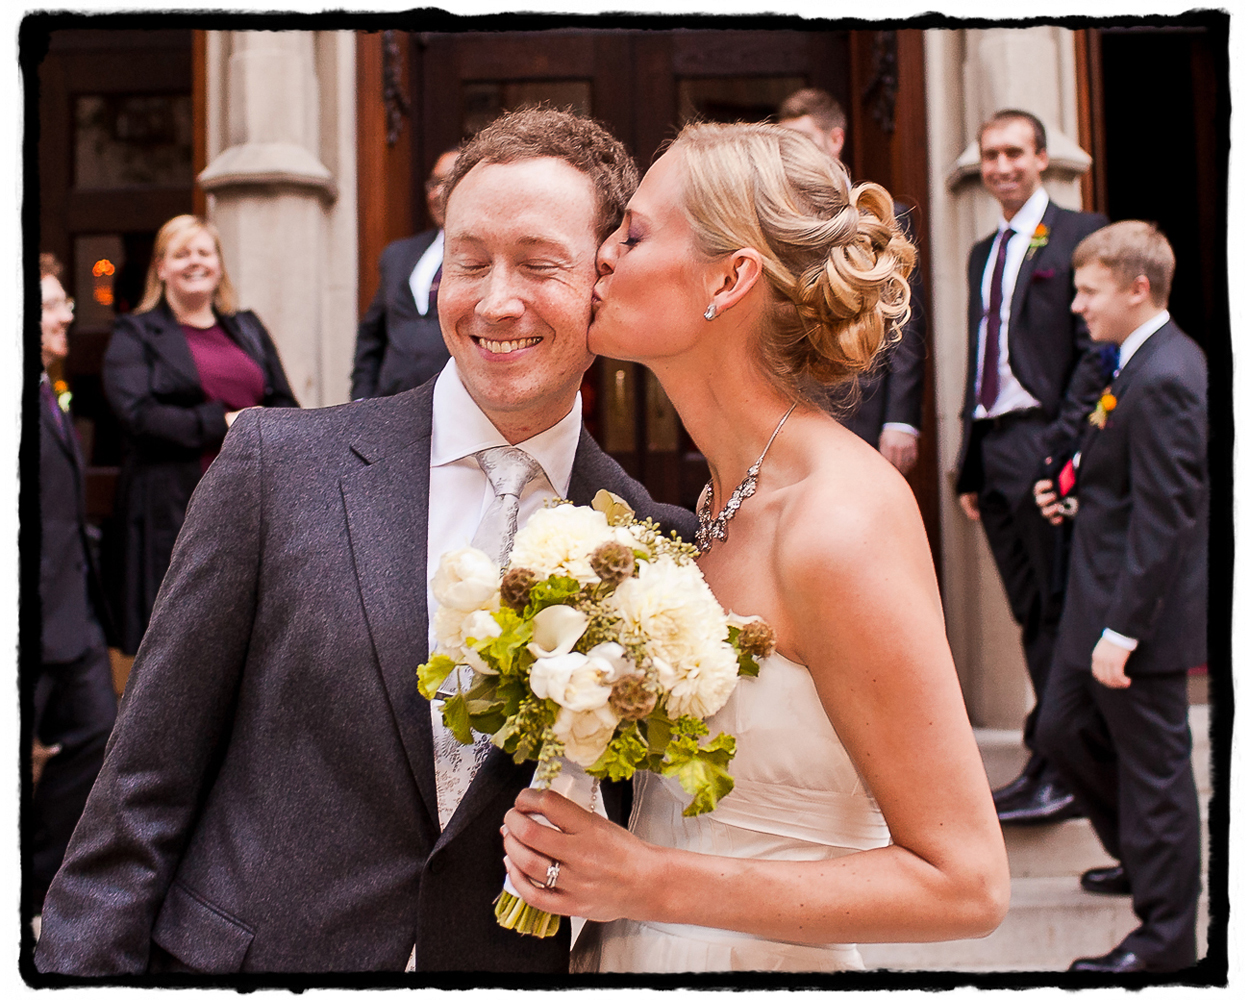 After their grand exit the bride bestows a spontaneous kiss on the groom's cheek on the steps of Blessed Sacrament on the upper west side.